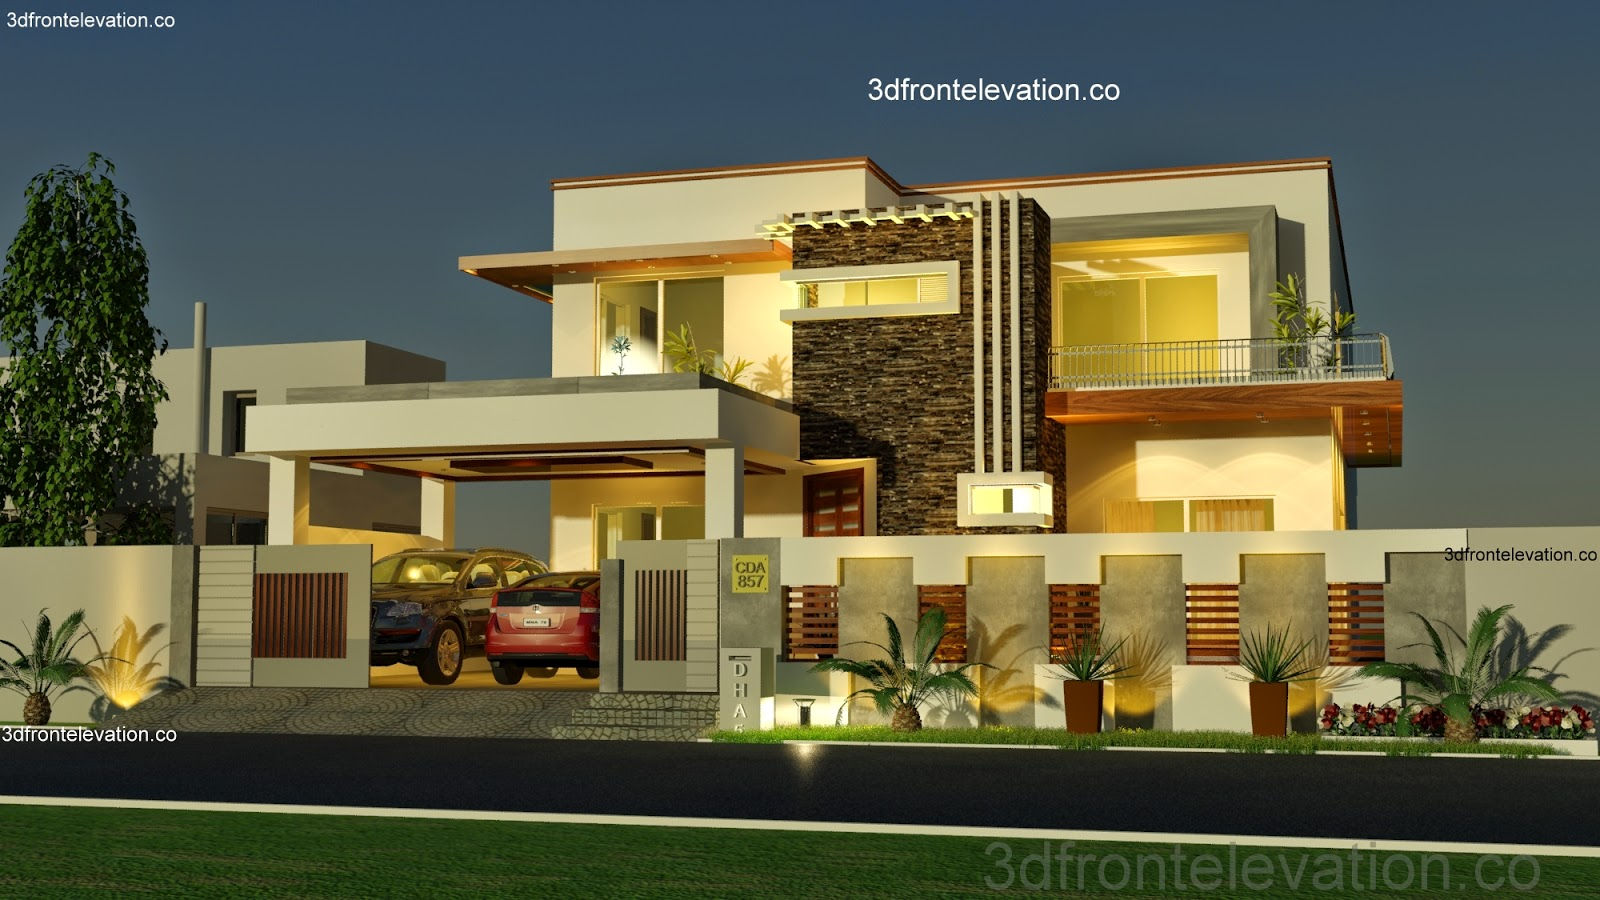 D Front Elevation Of House : D front elevation portfolio